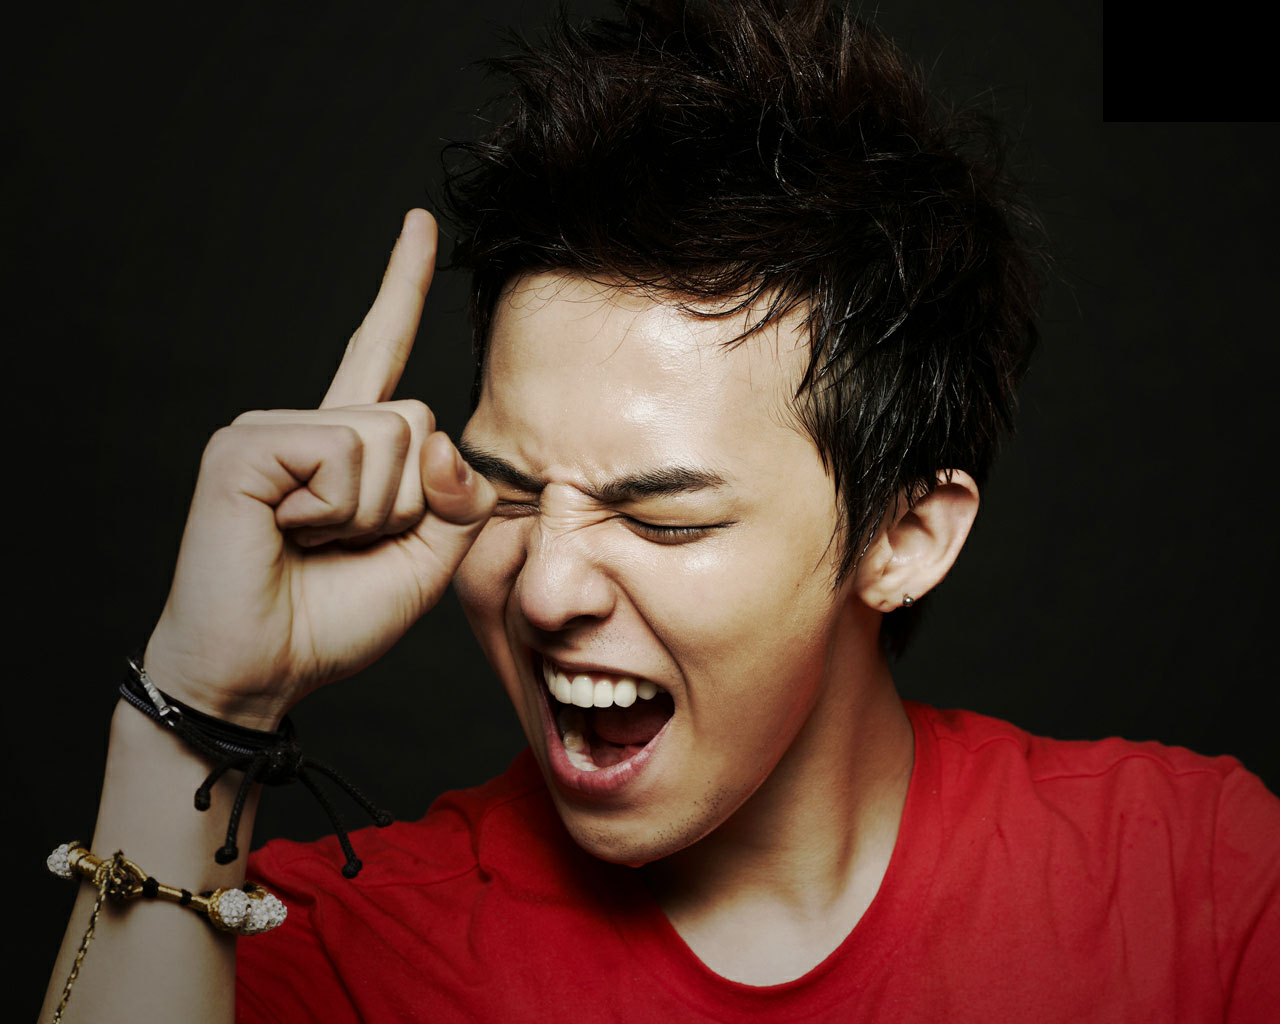 G Dragon Number One in Royalties